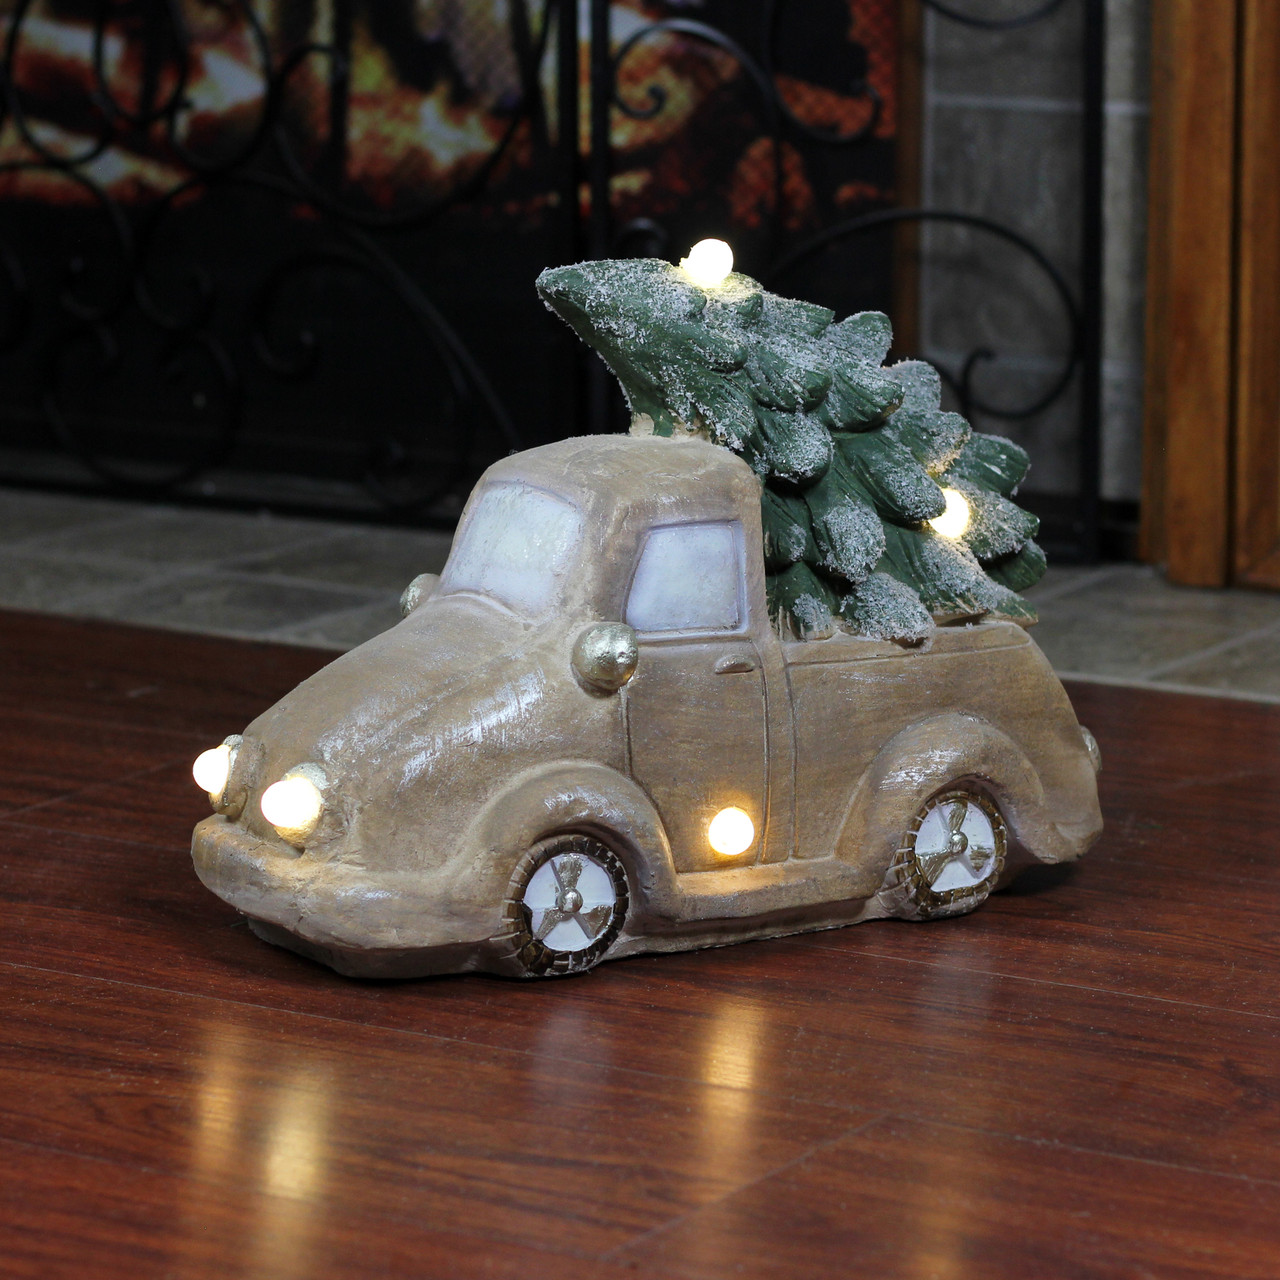 15 5 Lighted Musical Vintage Truck With Christmas Tree Table Top